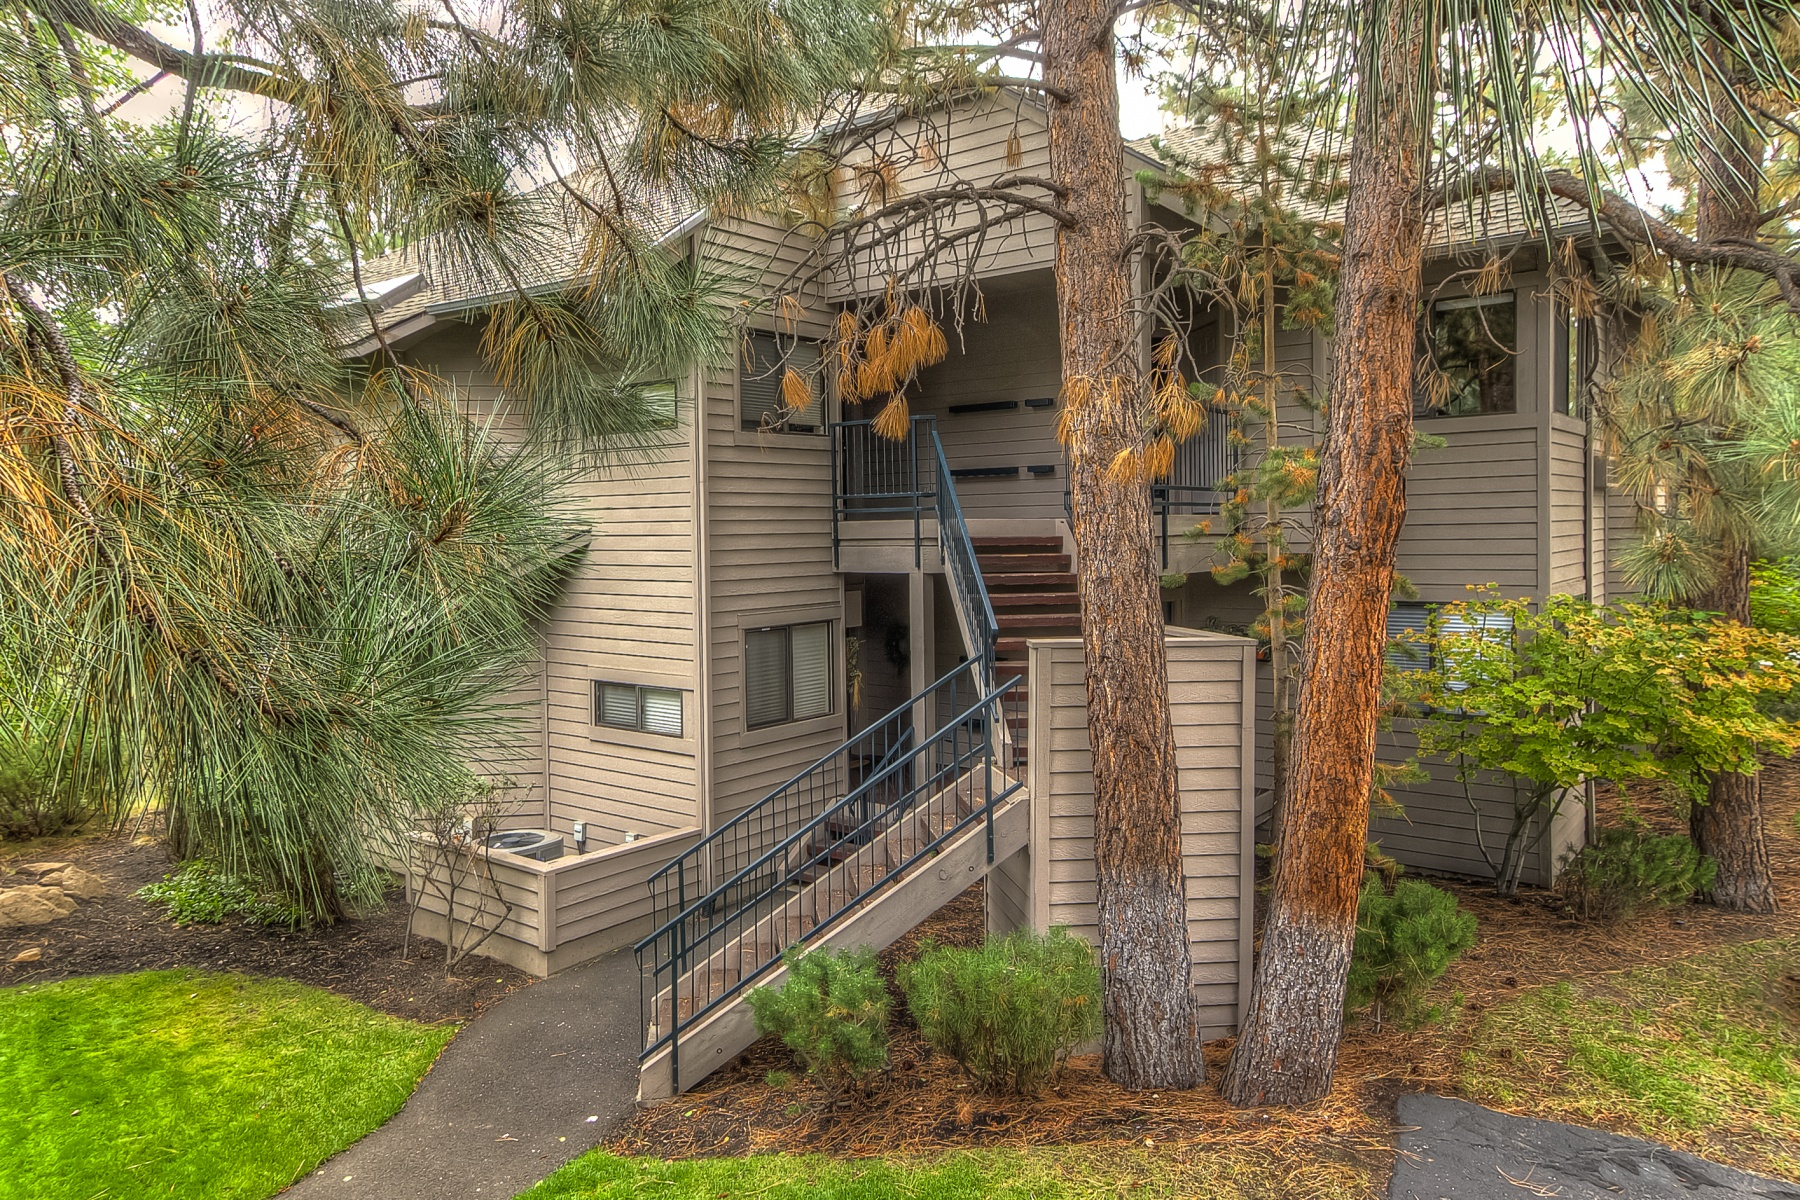 sales property at Mt Bachelor Village updated and ready for occupant